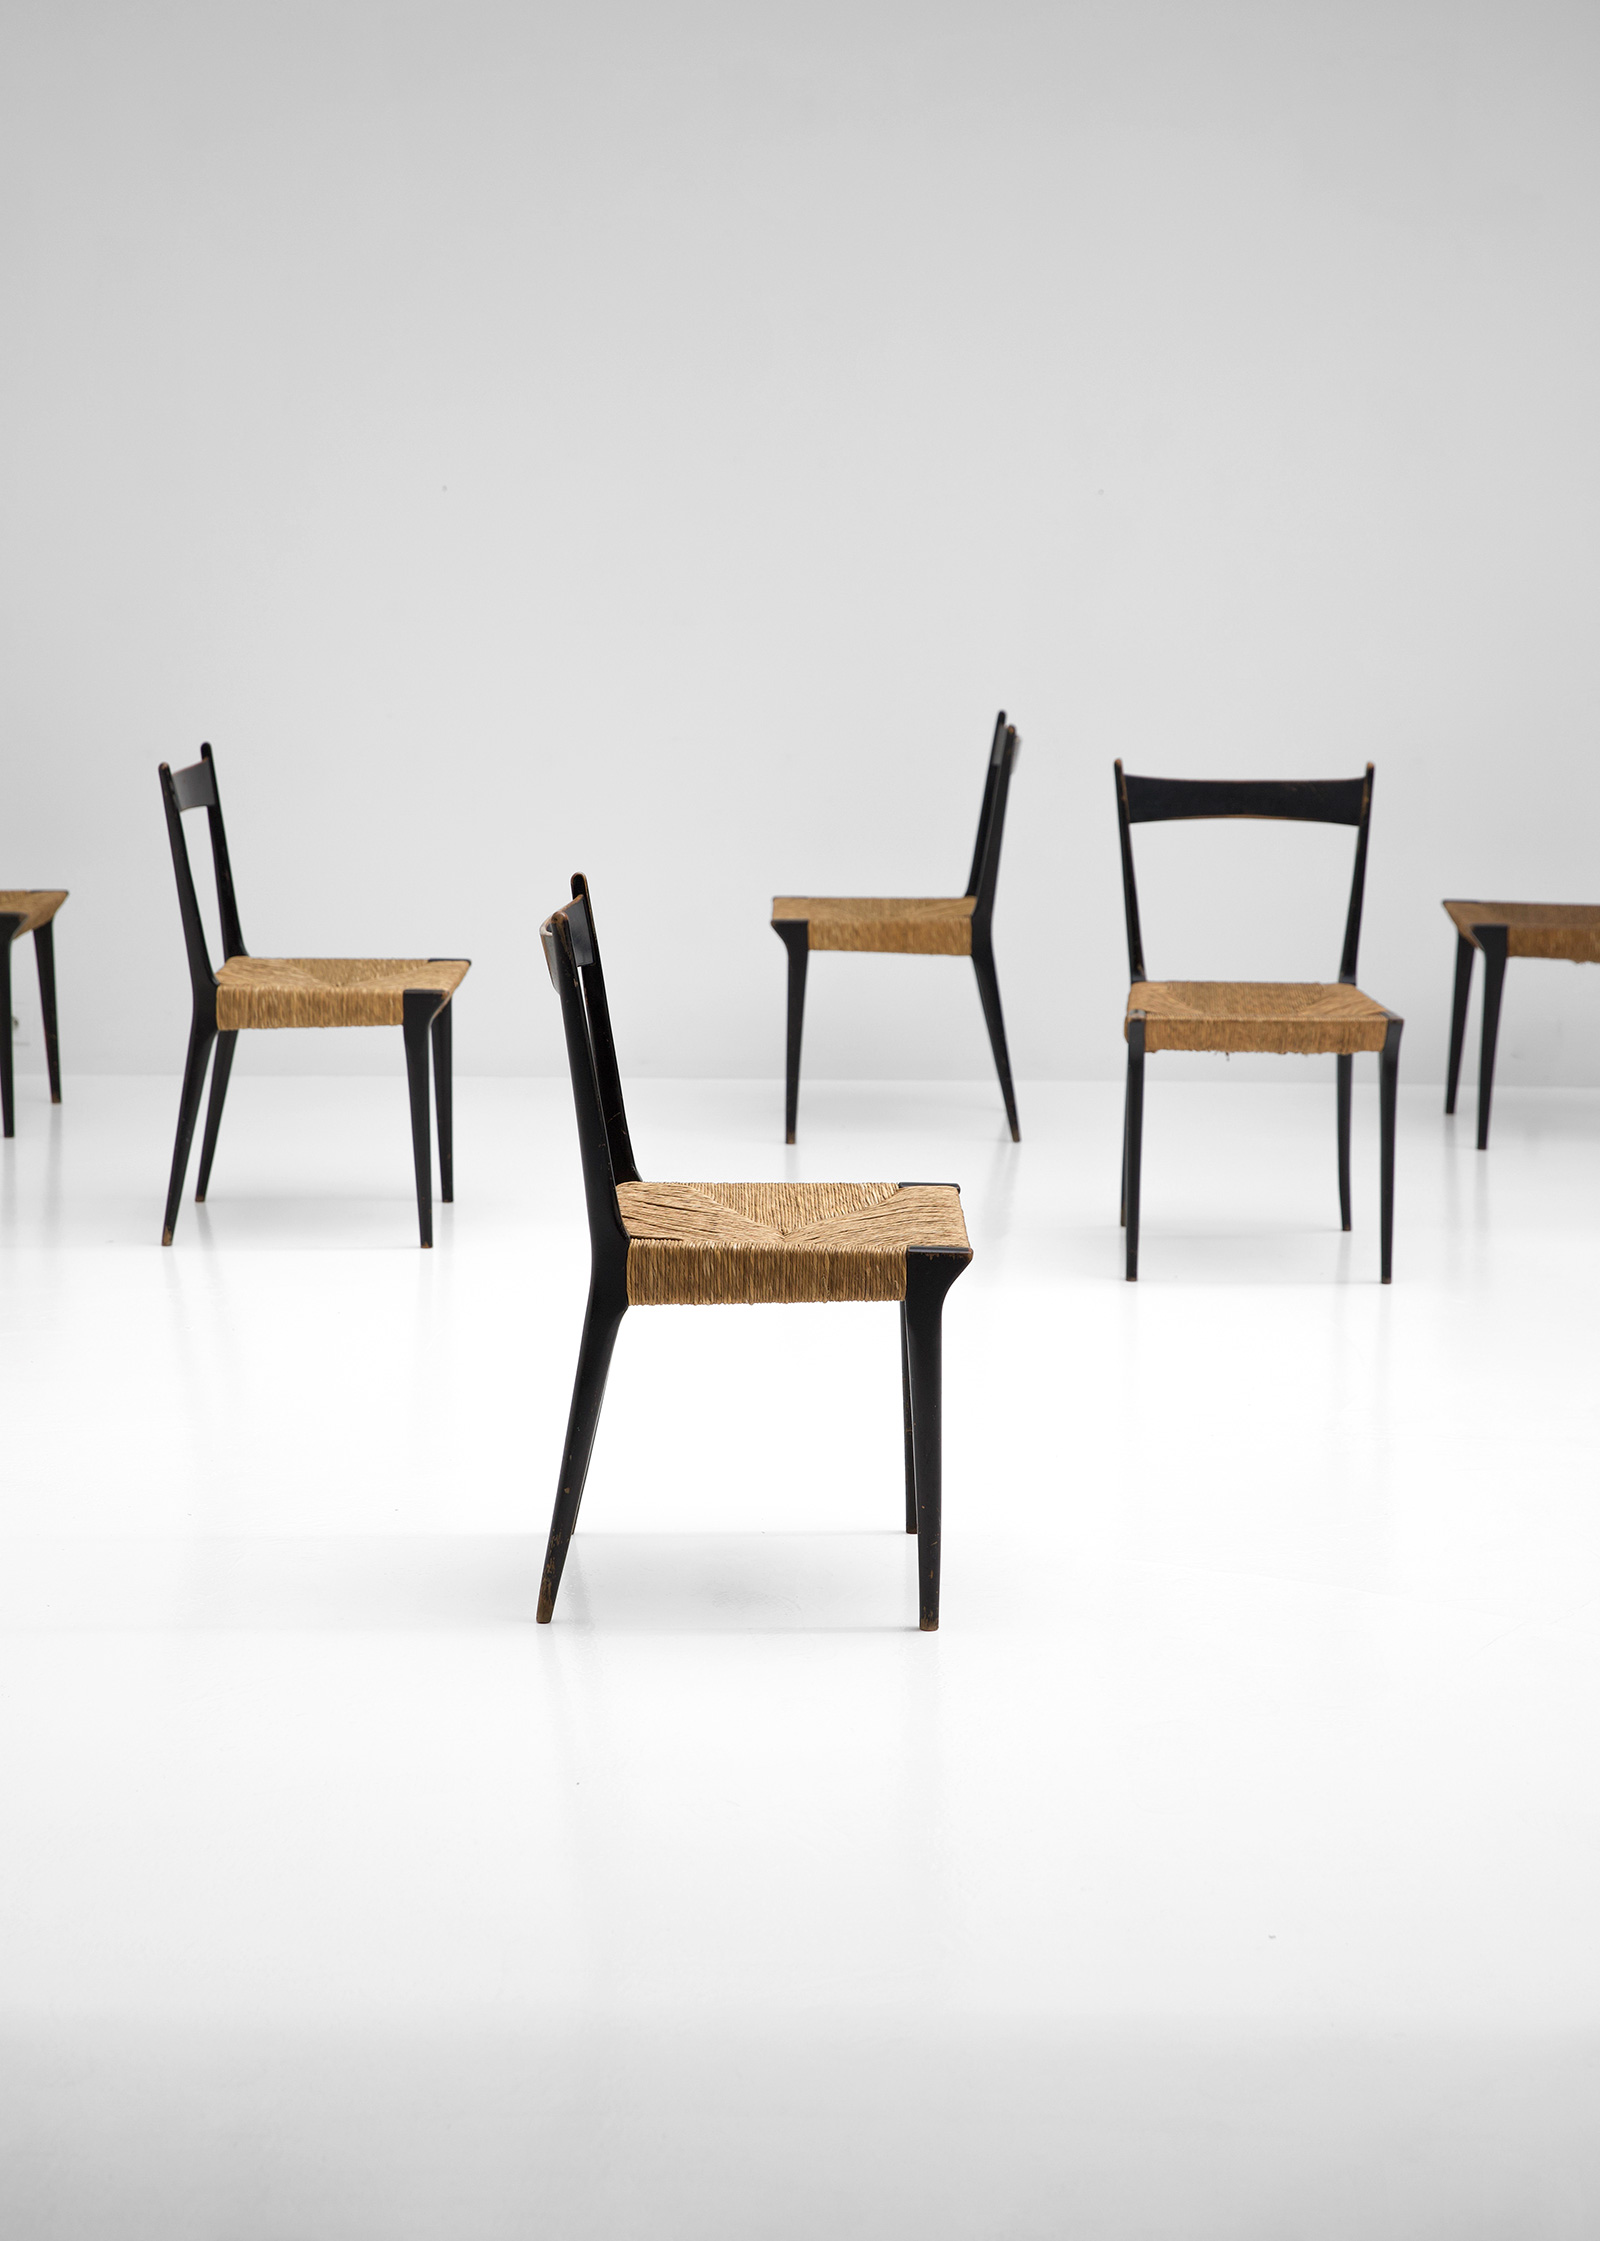 Alfred Hendrickx Woven Cane S2 Chairsimage 2